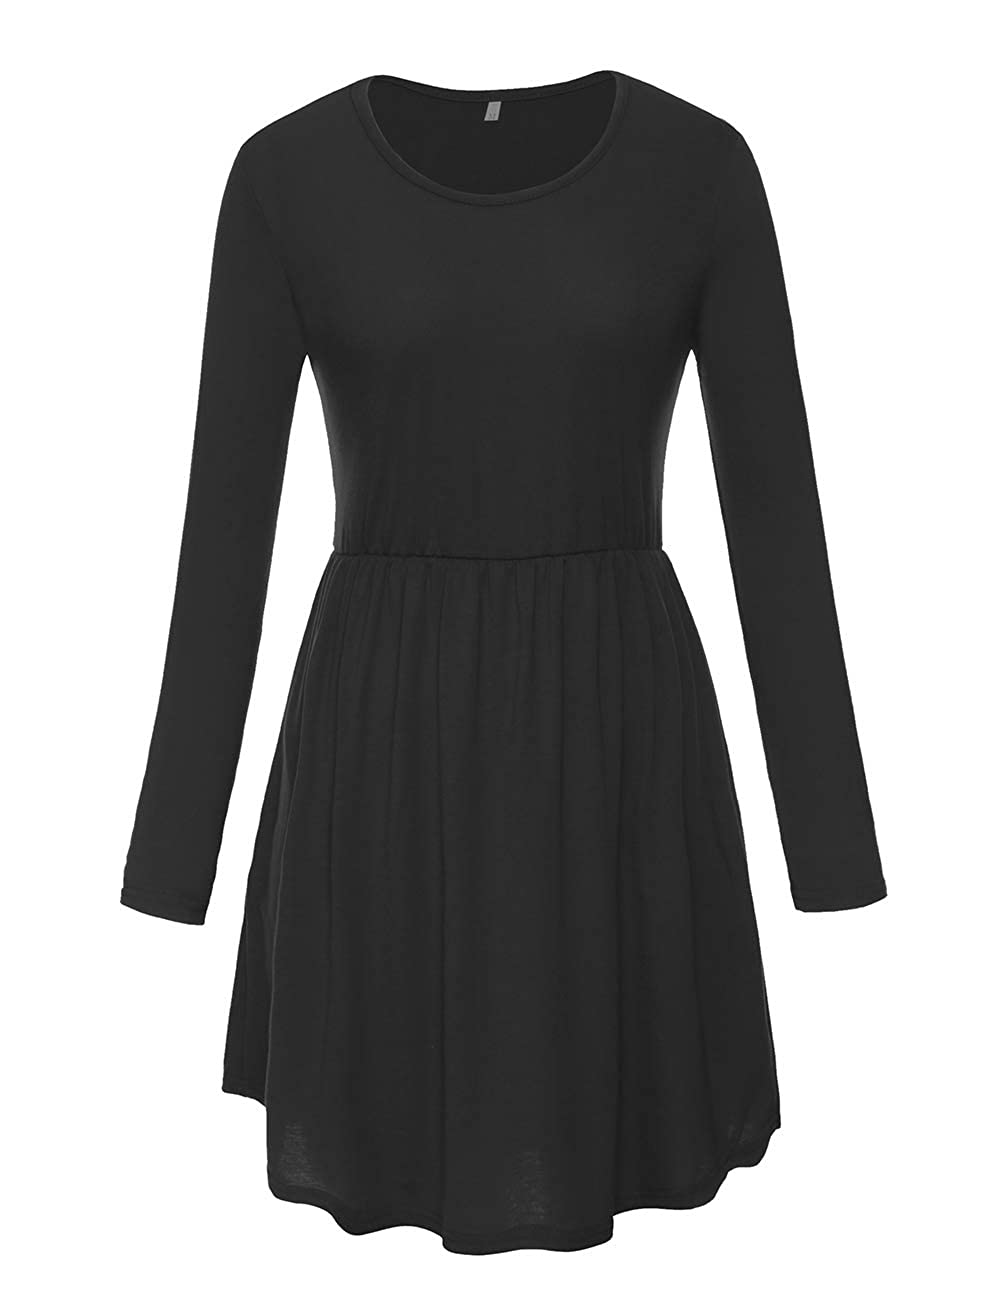 1black Long Sleeve CROSS1946 Women's Racerback Pleated Sundress Elastic Waist Flowy Curved Hem TShirt Dress Pockets